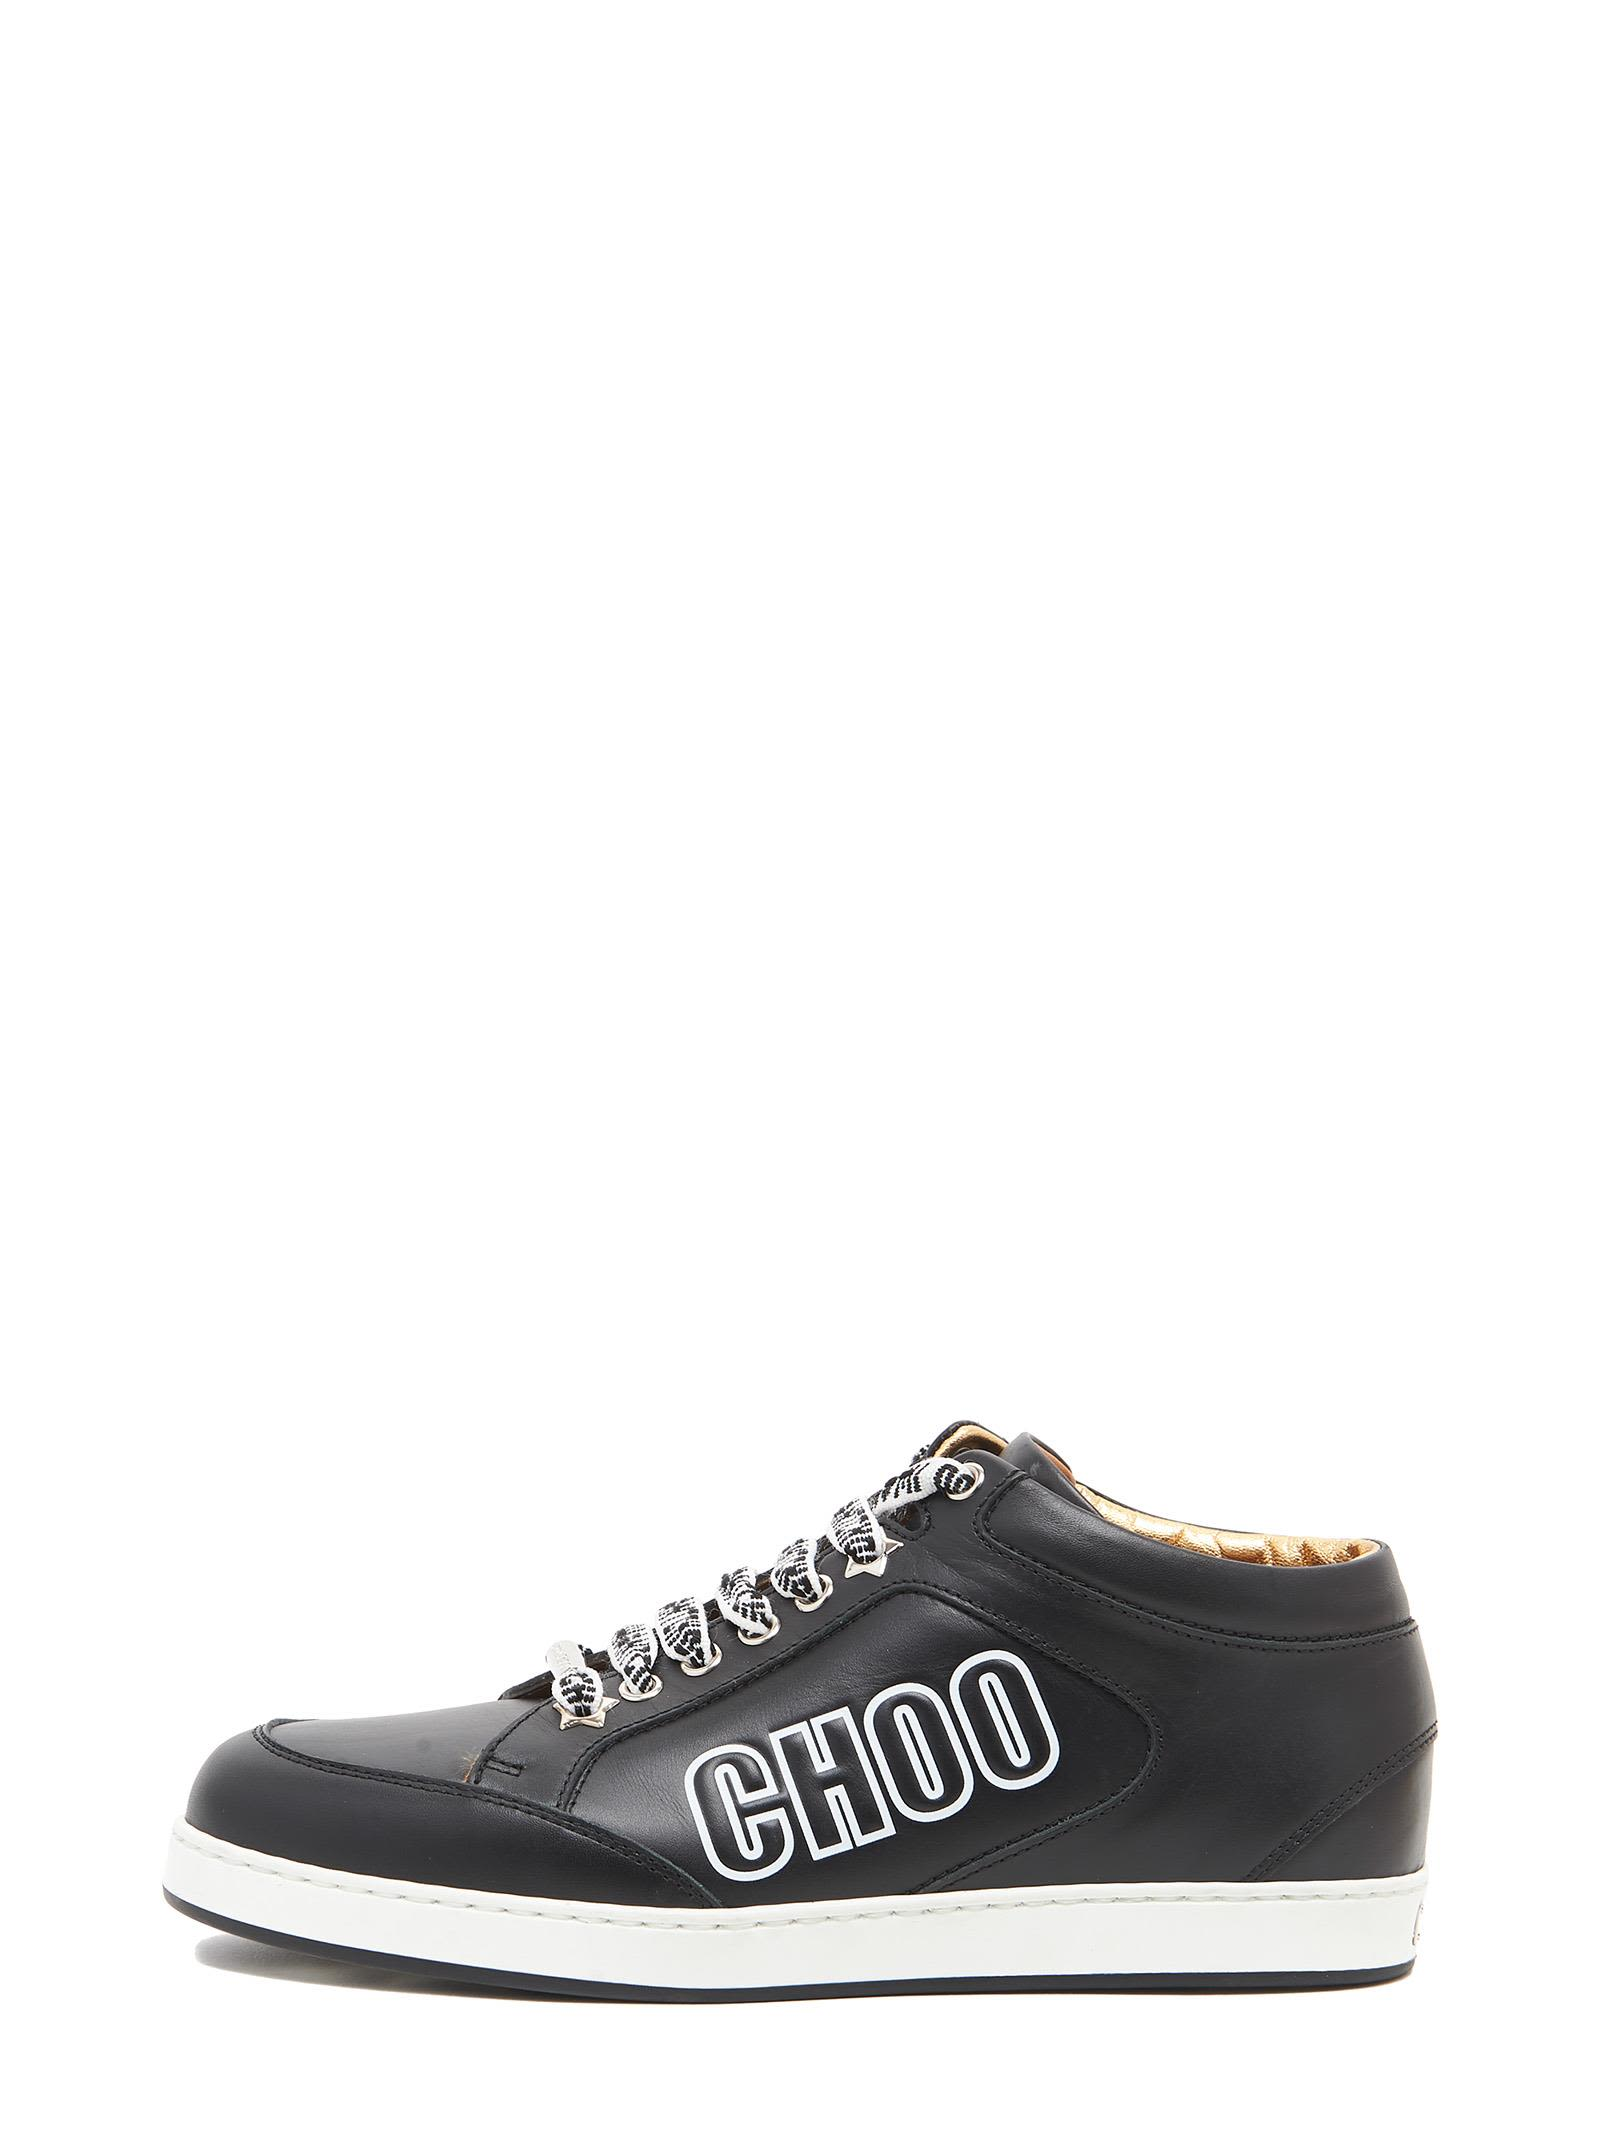 Jimmy Choo 'miami' Shoes